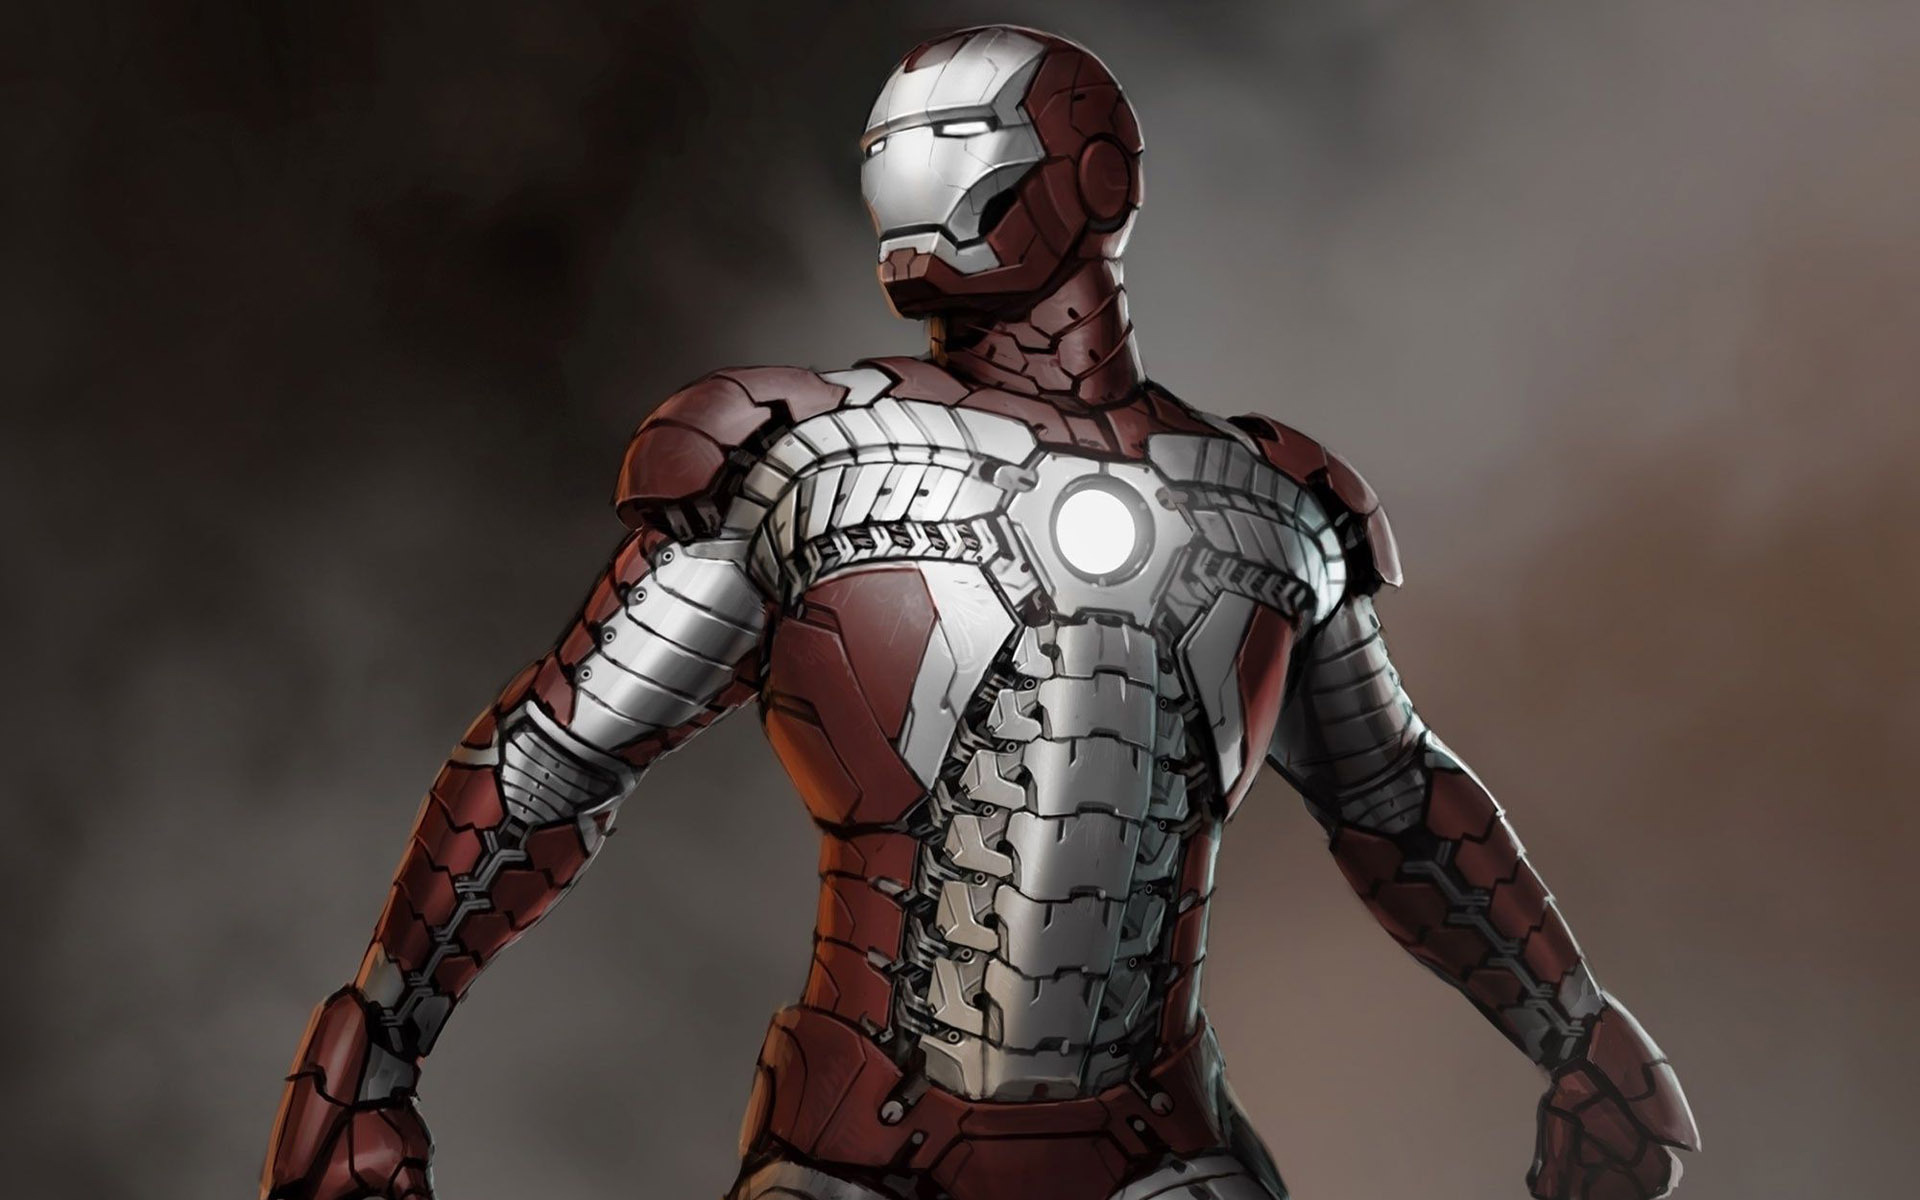 Mk Name Wallpaper Hd Iron Man Hd Wallpapers For Desktop Download